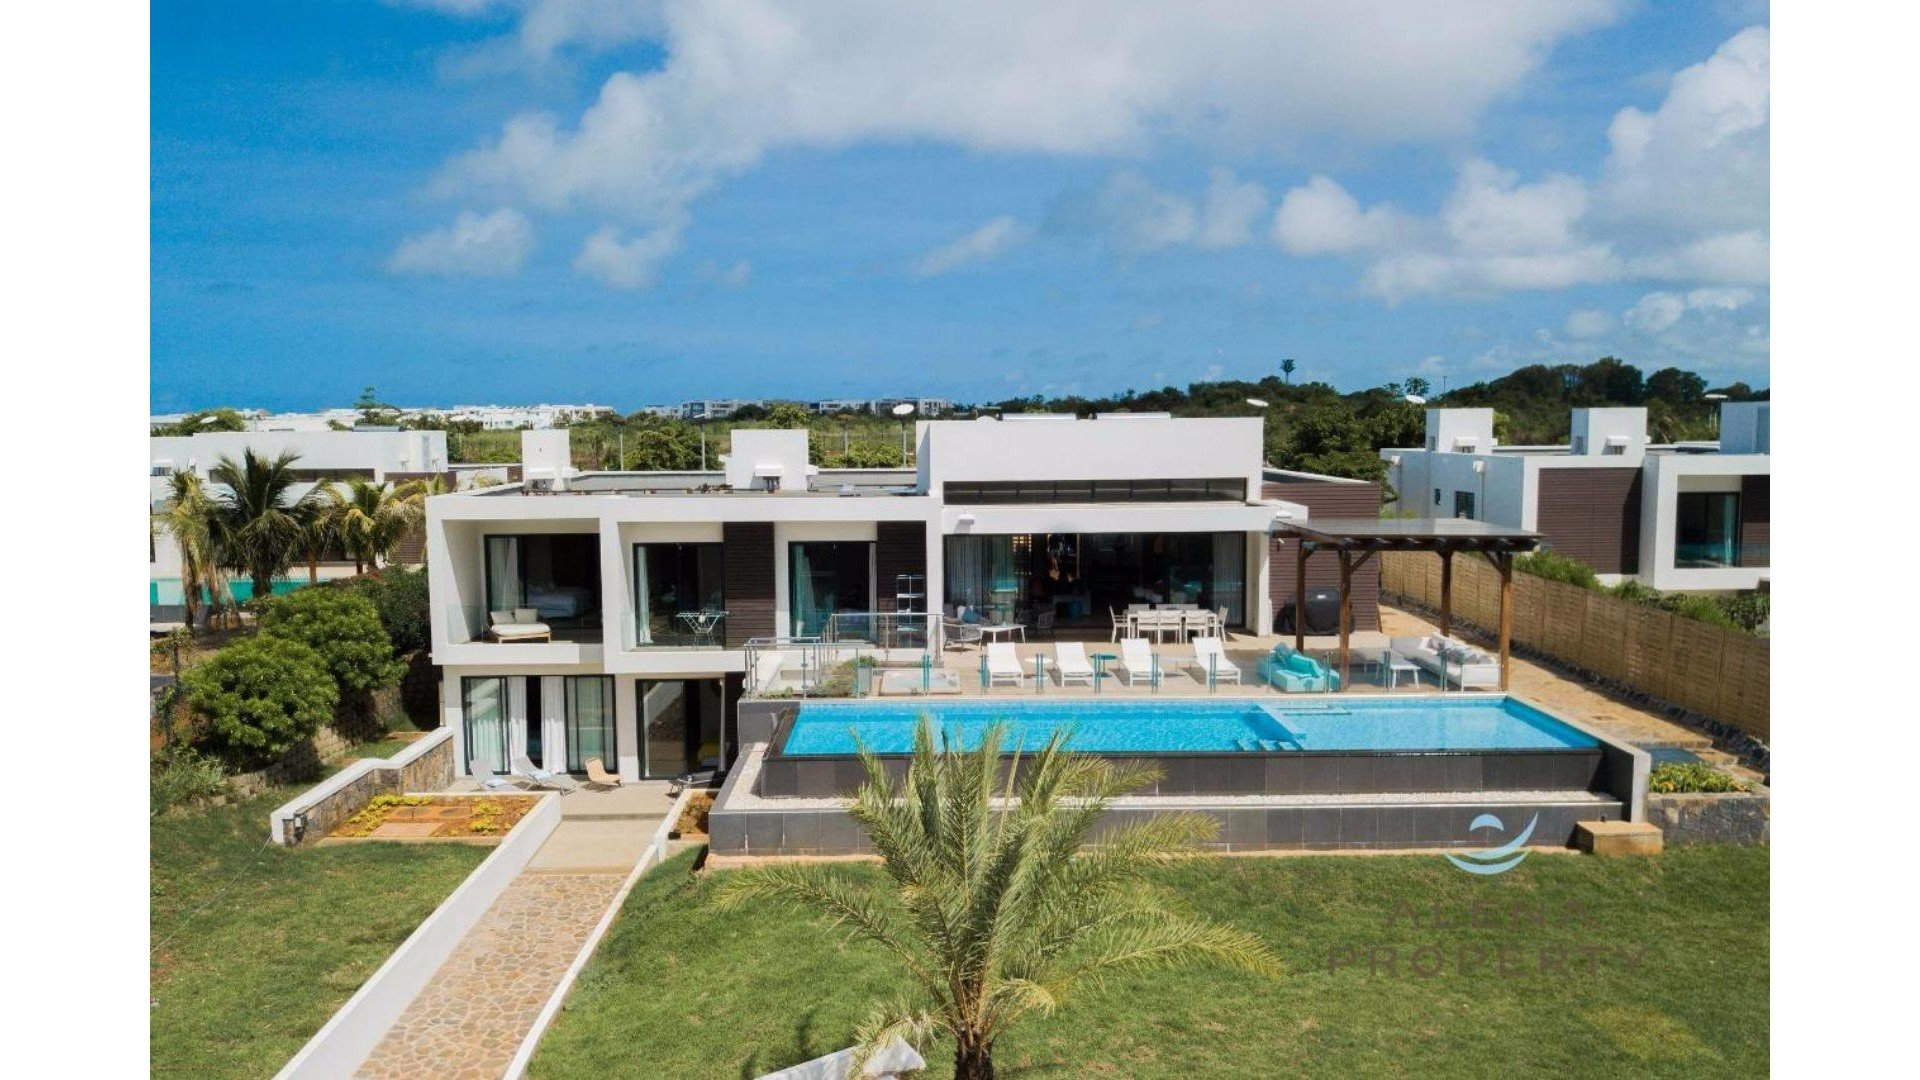 5 bedroom villa with amazing features